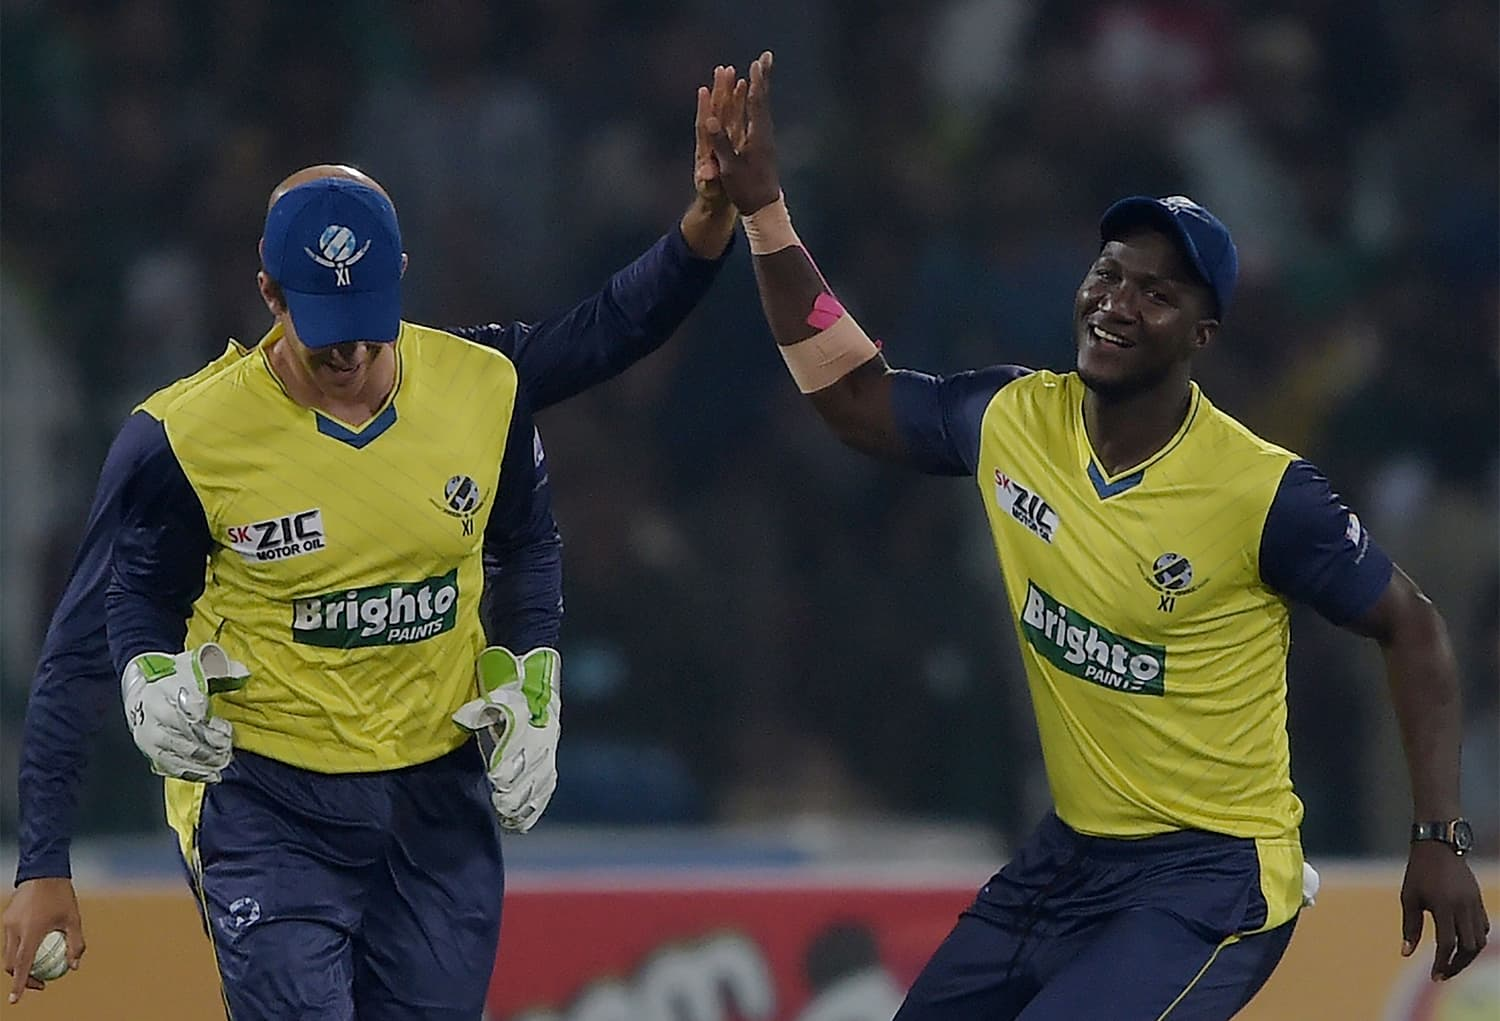 World XI cricketer Darren Sammy (R) celebrates after the dismissal of Fakhar Zaman during the first Twenty20 international match between the World XI and Pakistan at Gaddafi Stadium in Lahore. ─AFP